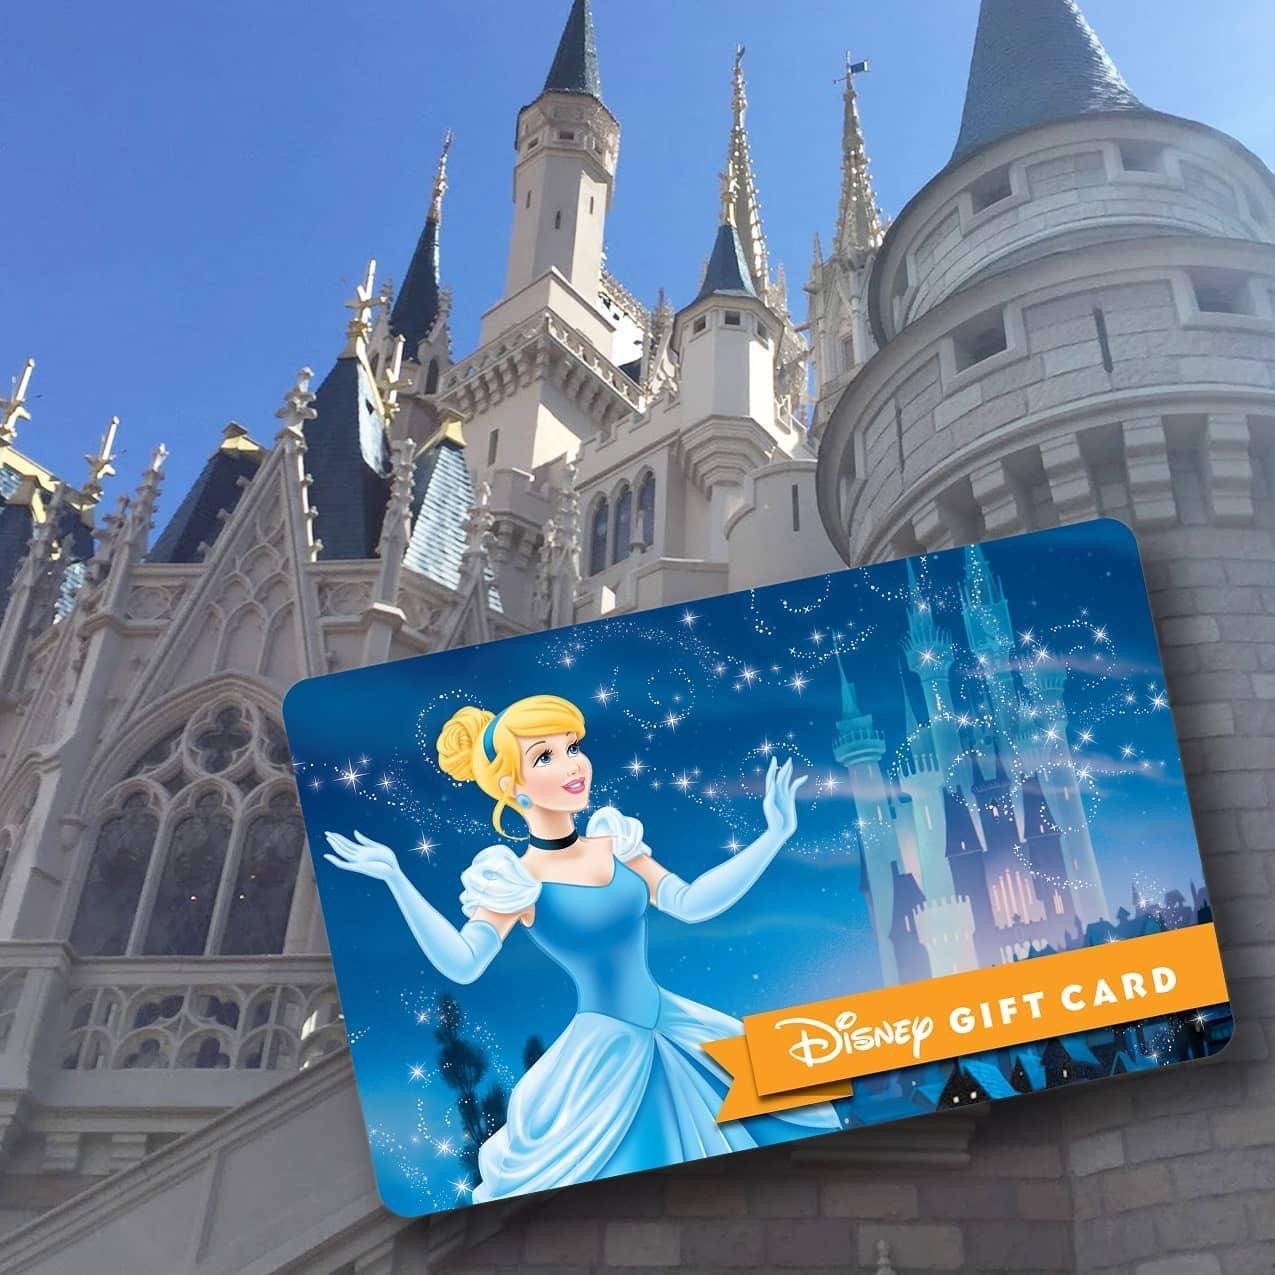 New Disney Gift Card Designs for Your Holiday Gift Giving from shopDisney! 7